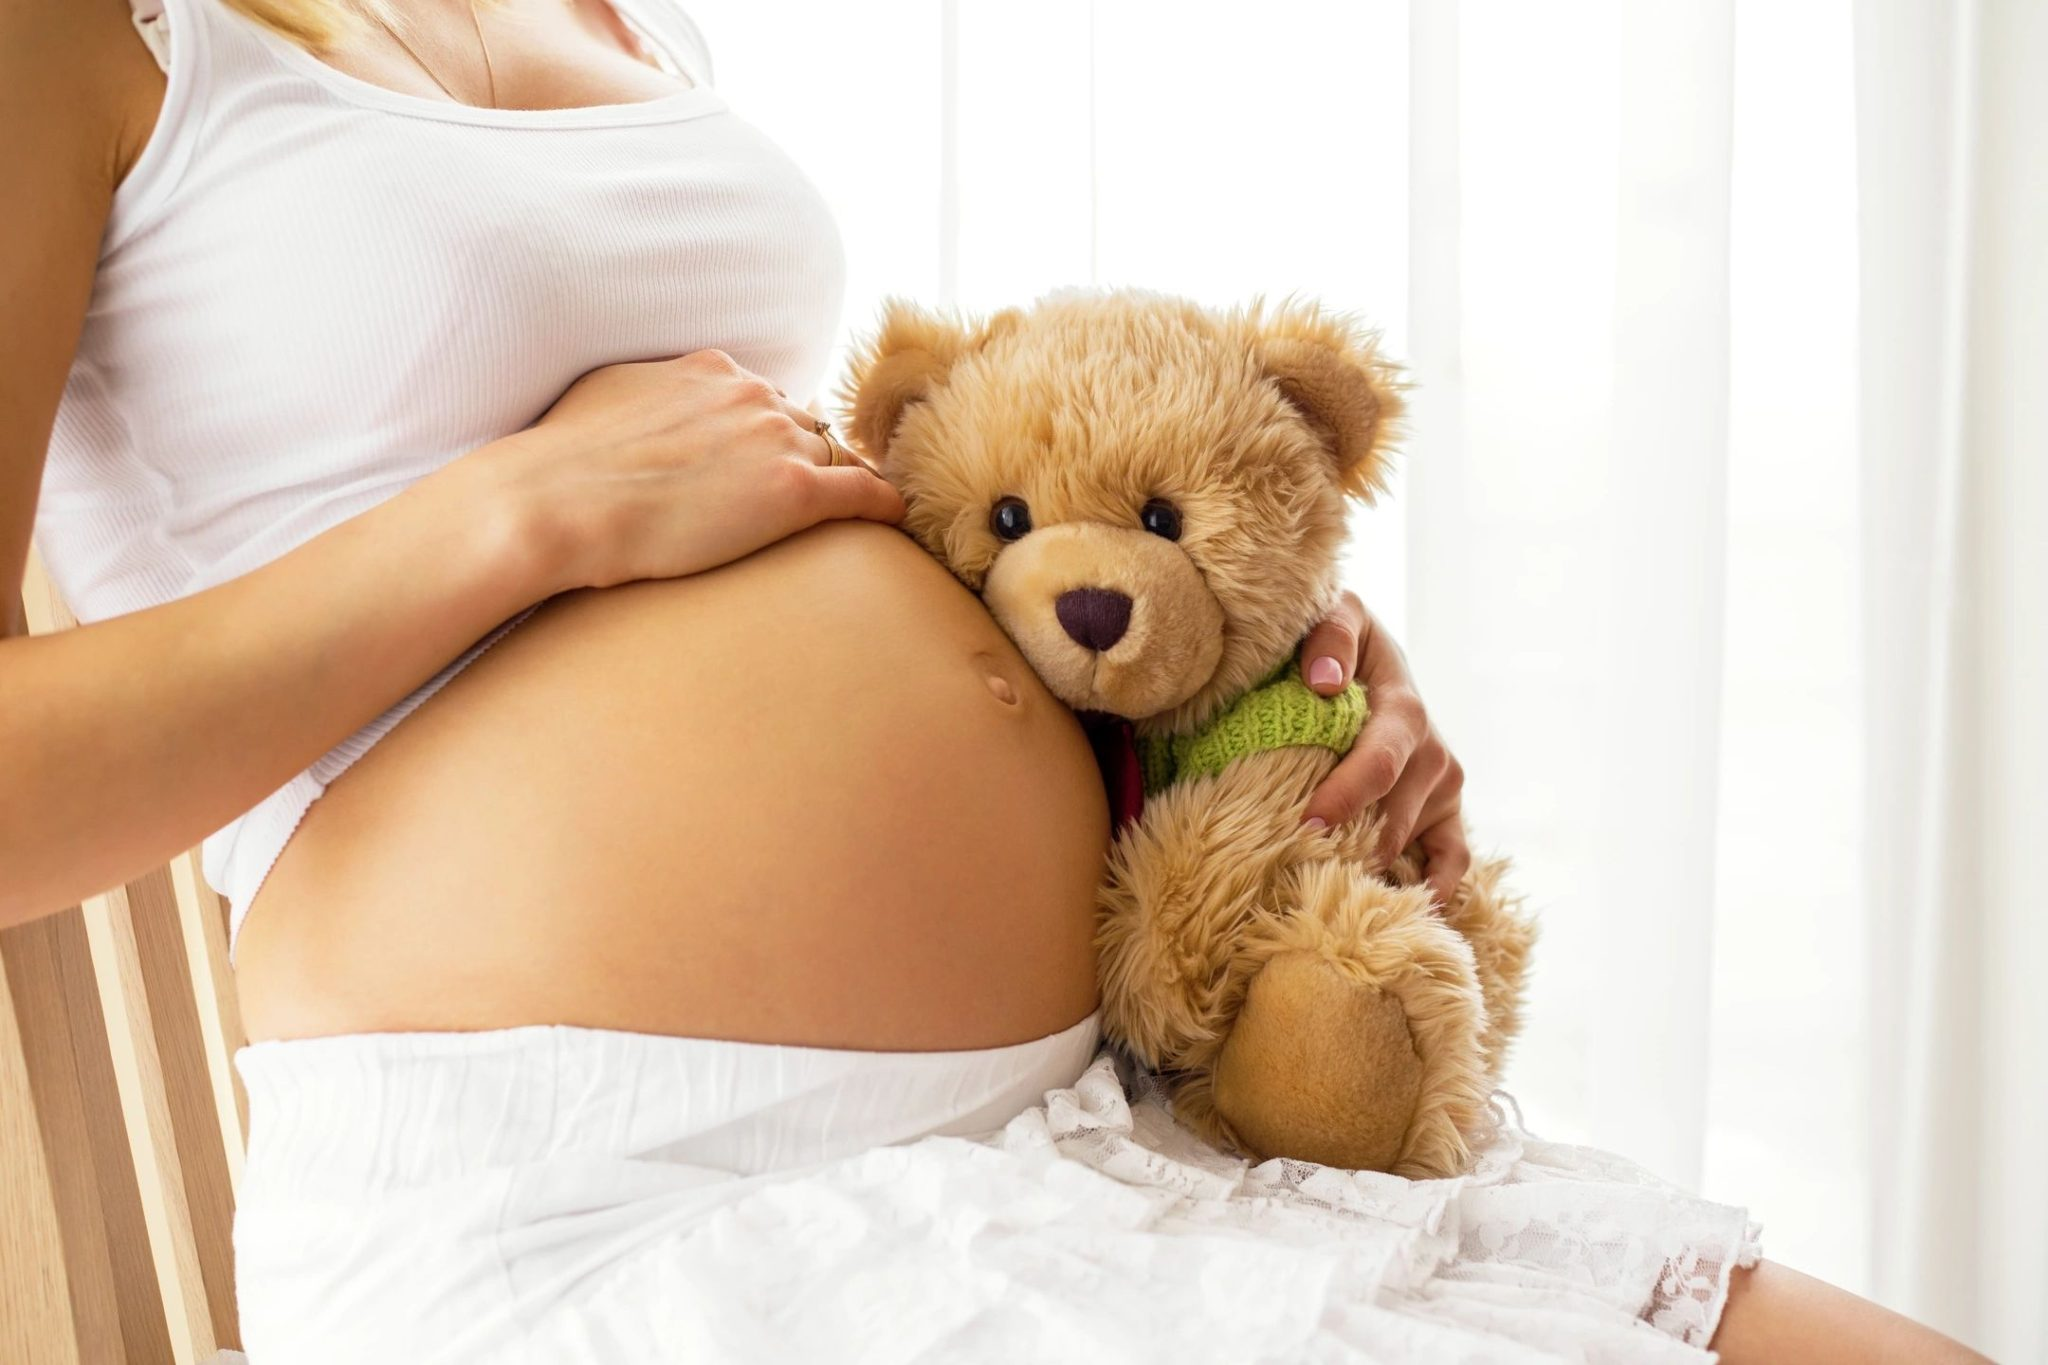 massage is helpful for pregnant women